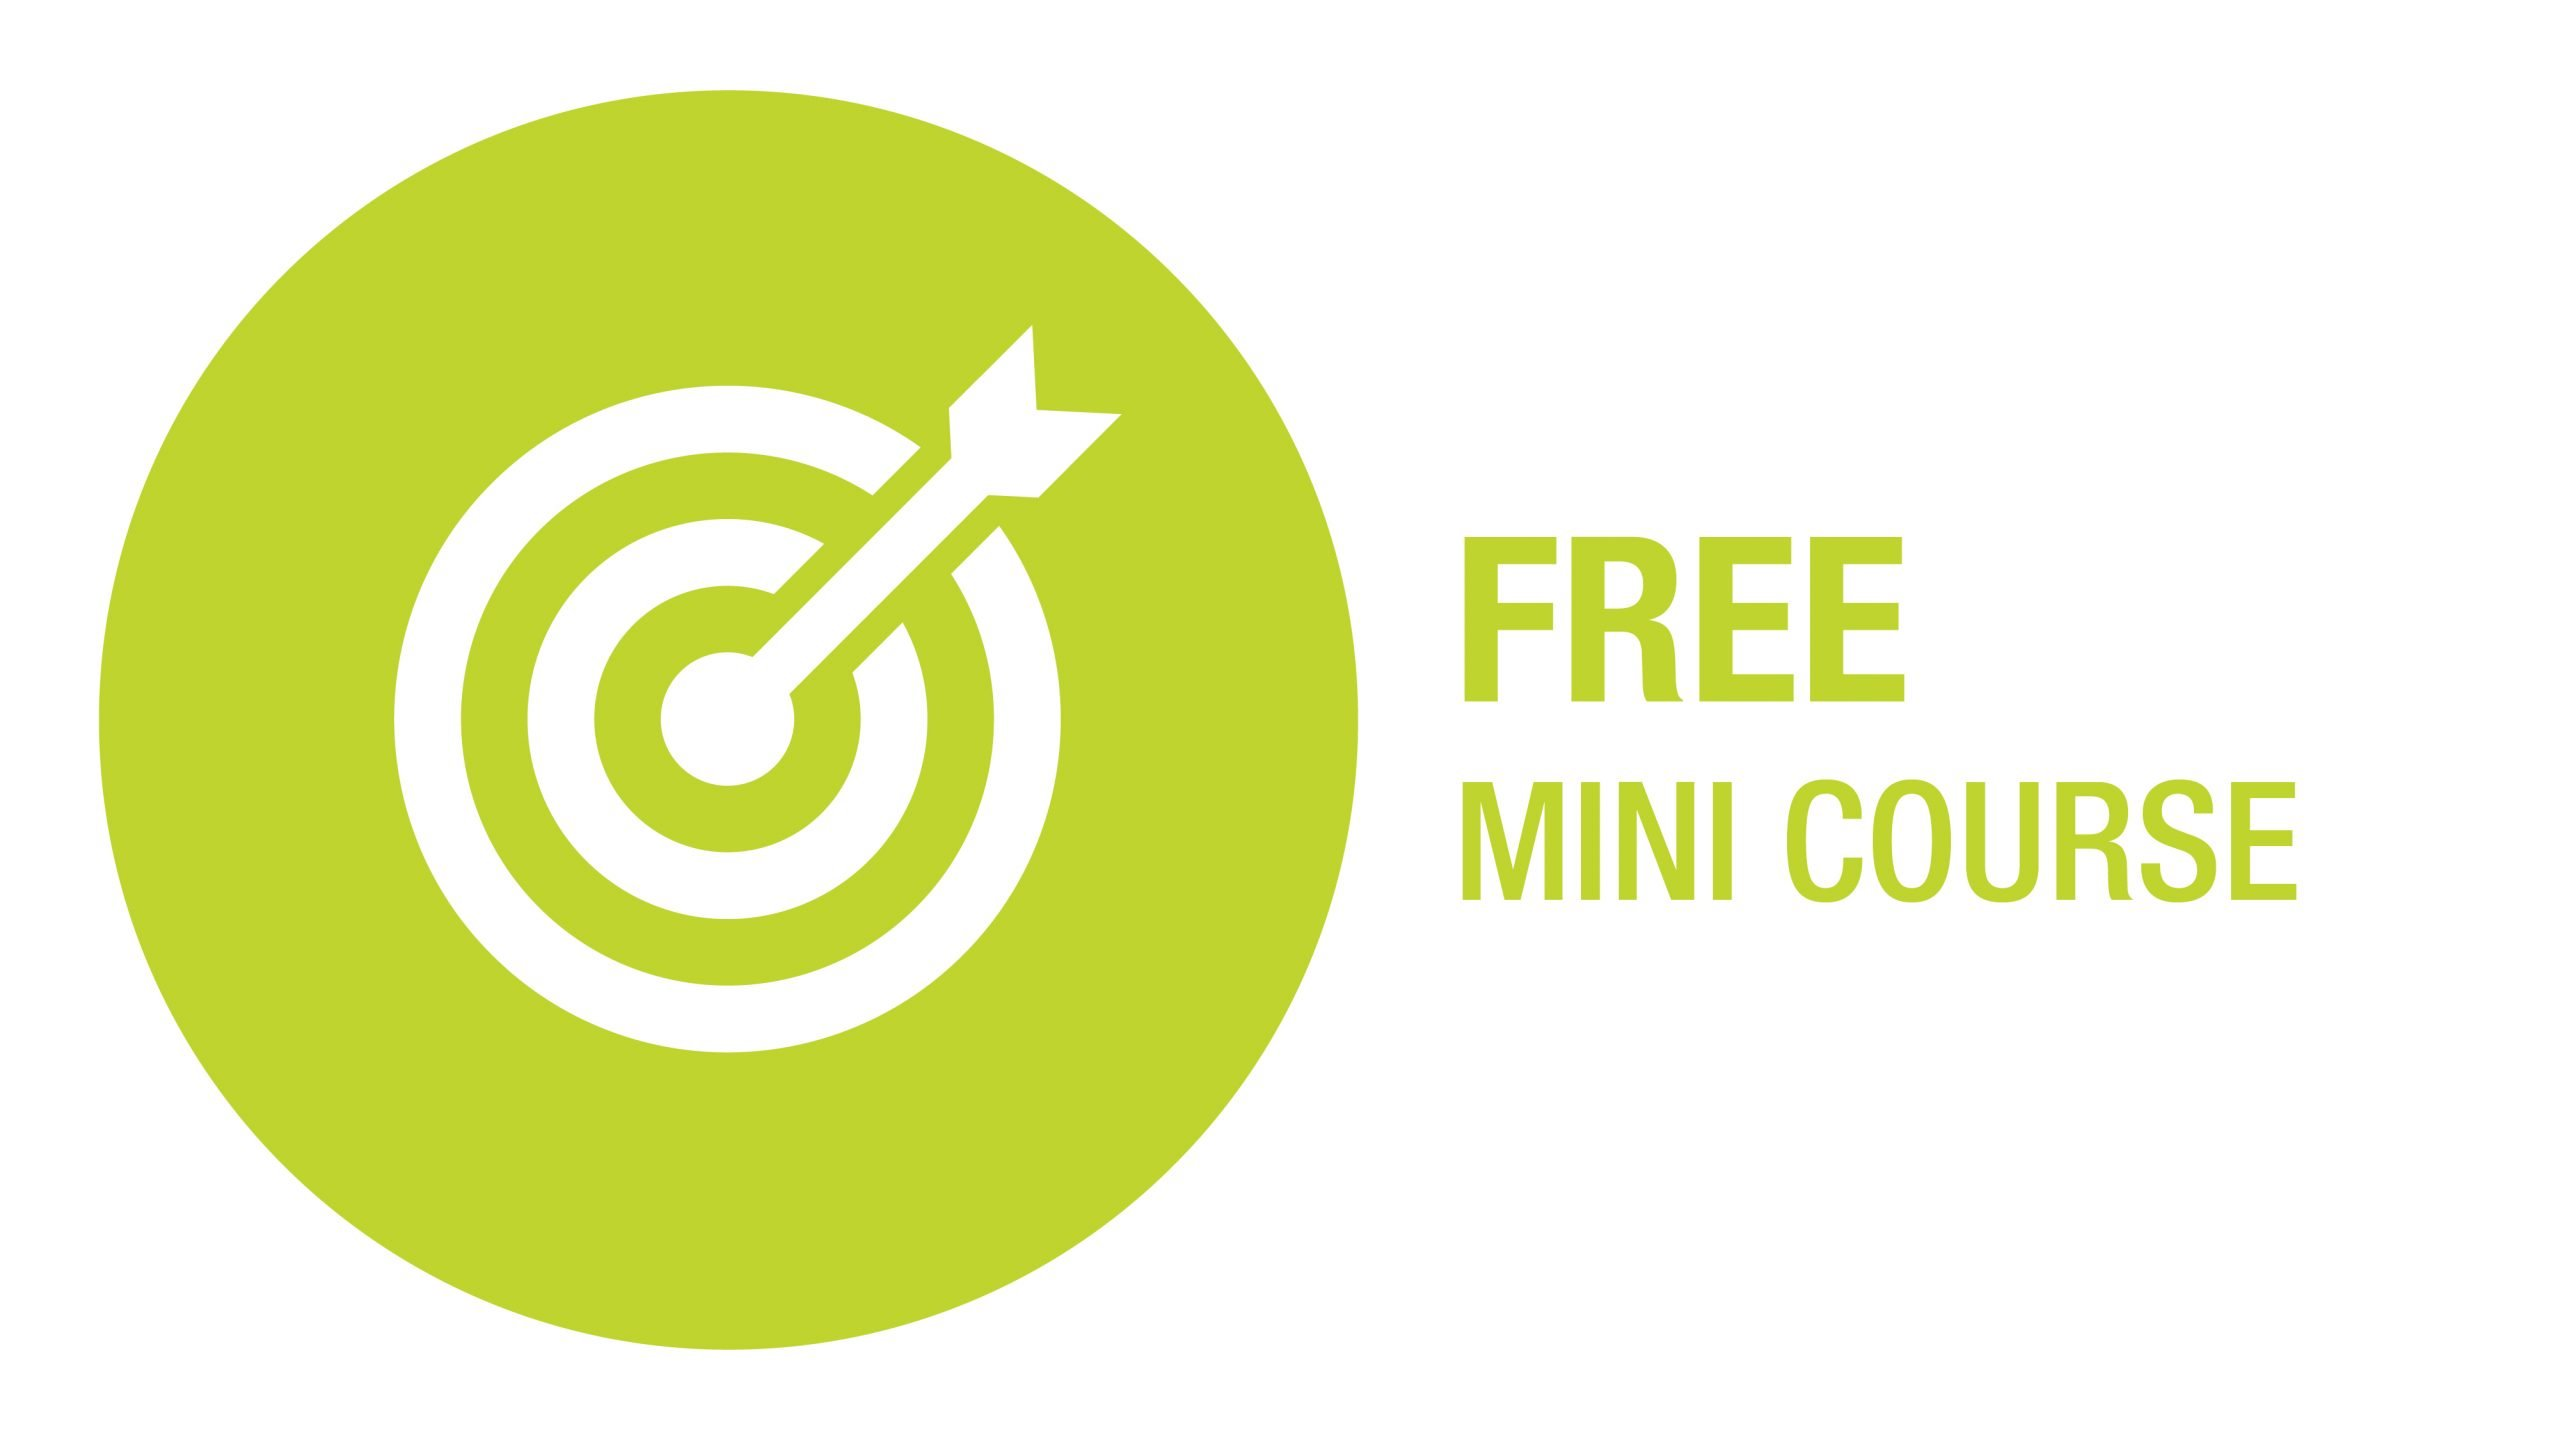 Free Mini Course Icon from Sportmi